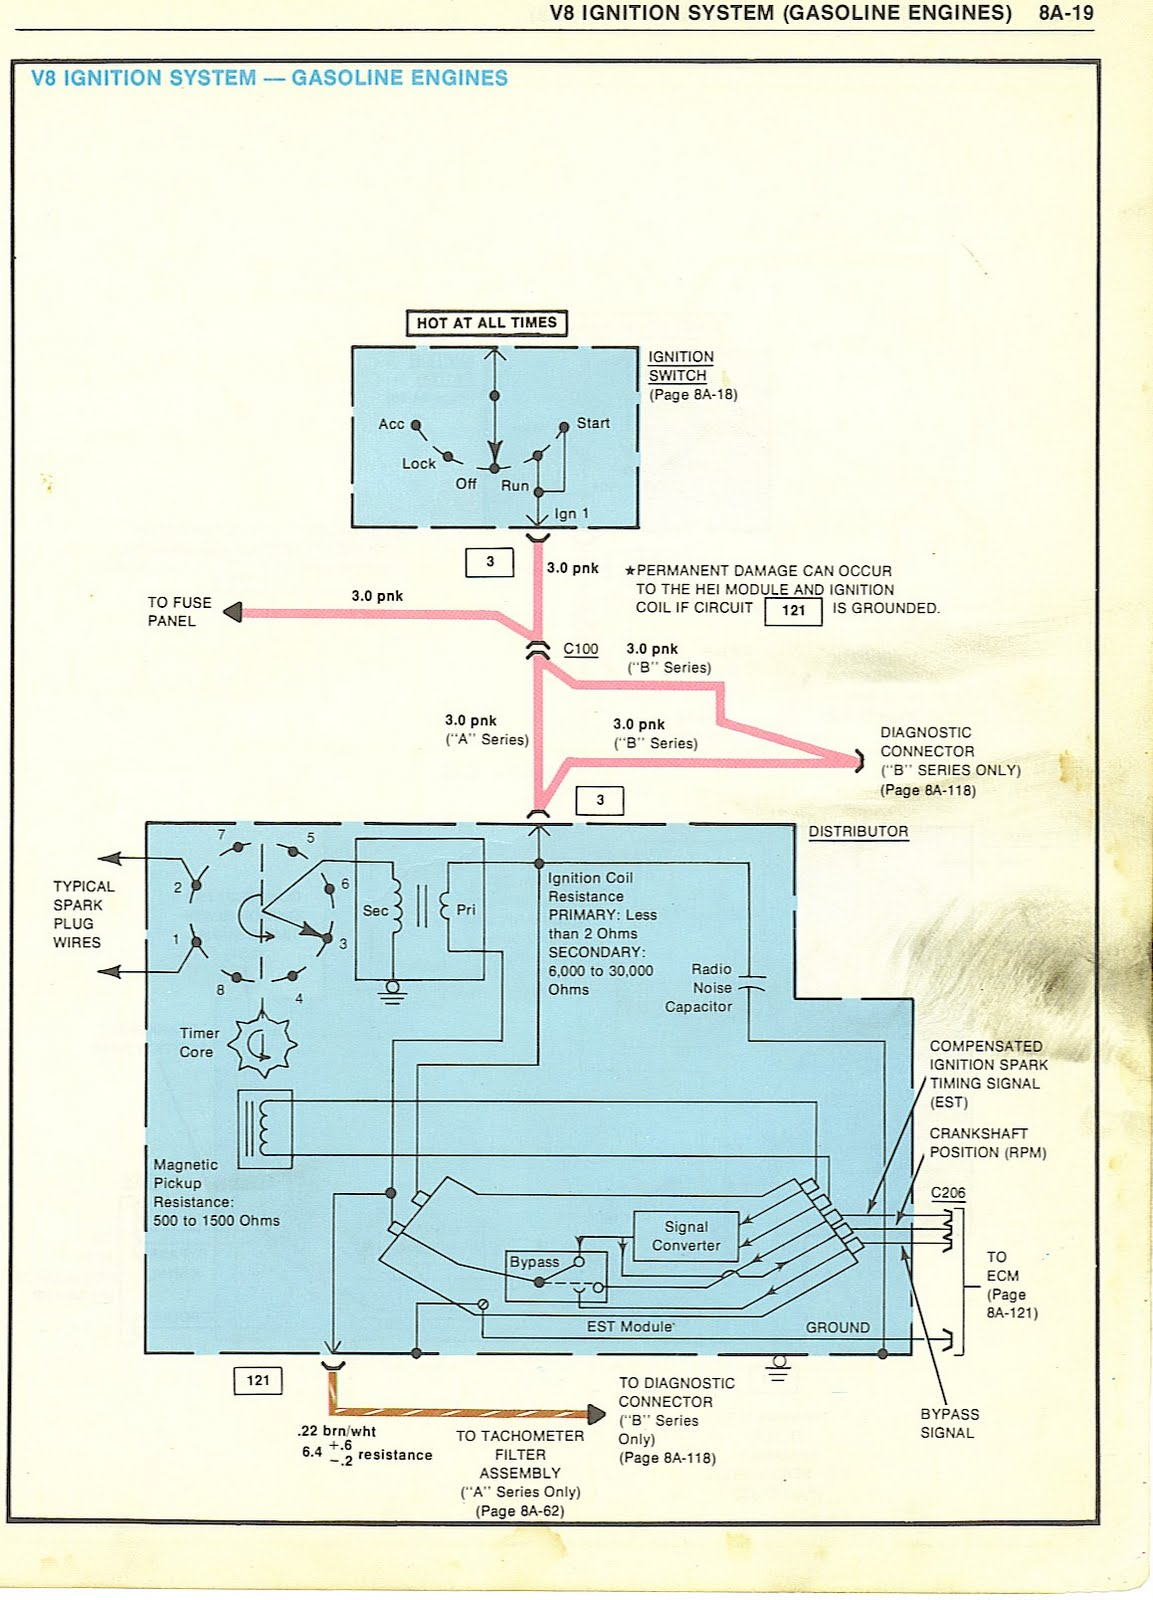 atlas copco wiring diagram lotus v8 engine diagram wirdig wiring diagram chevrolet bu v8 ignition system wiring diagram